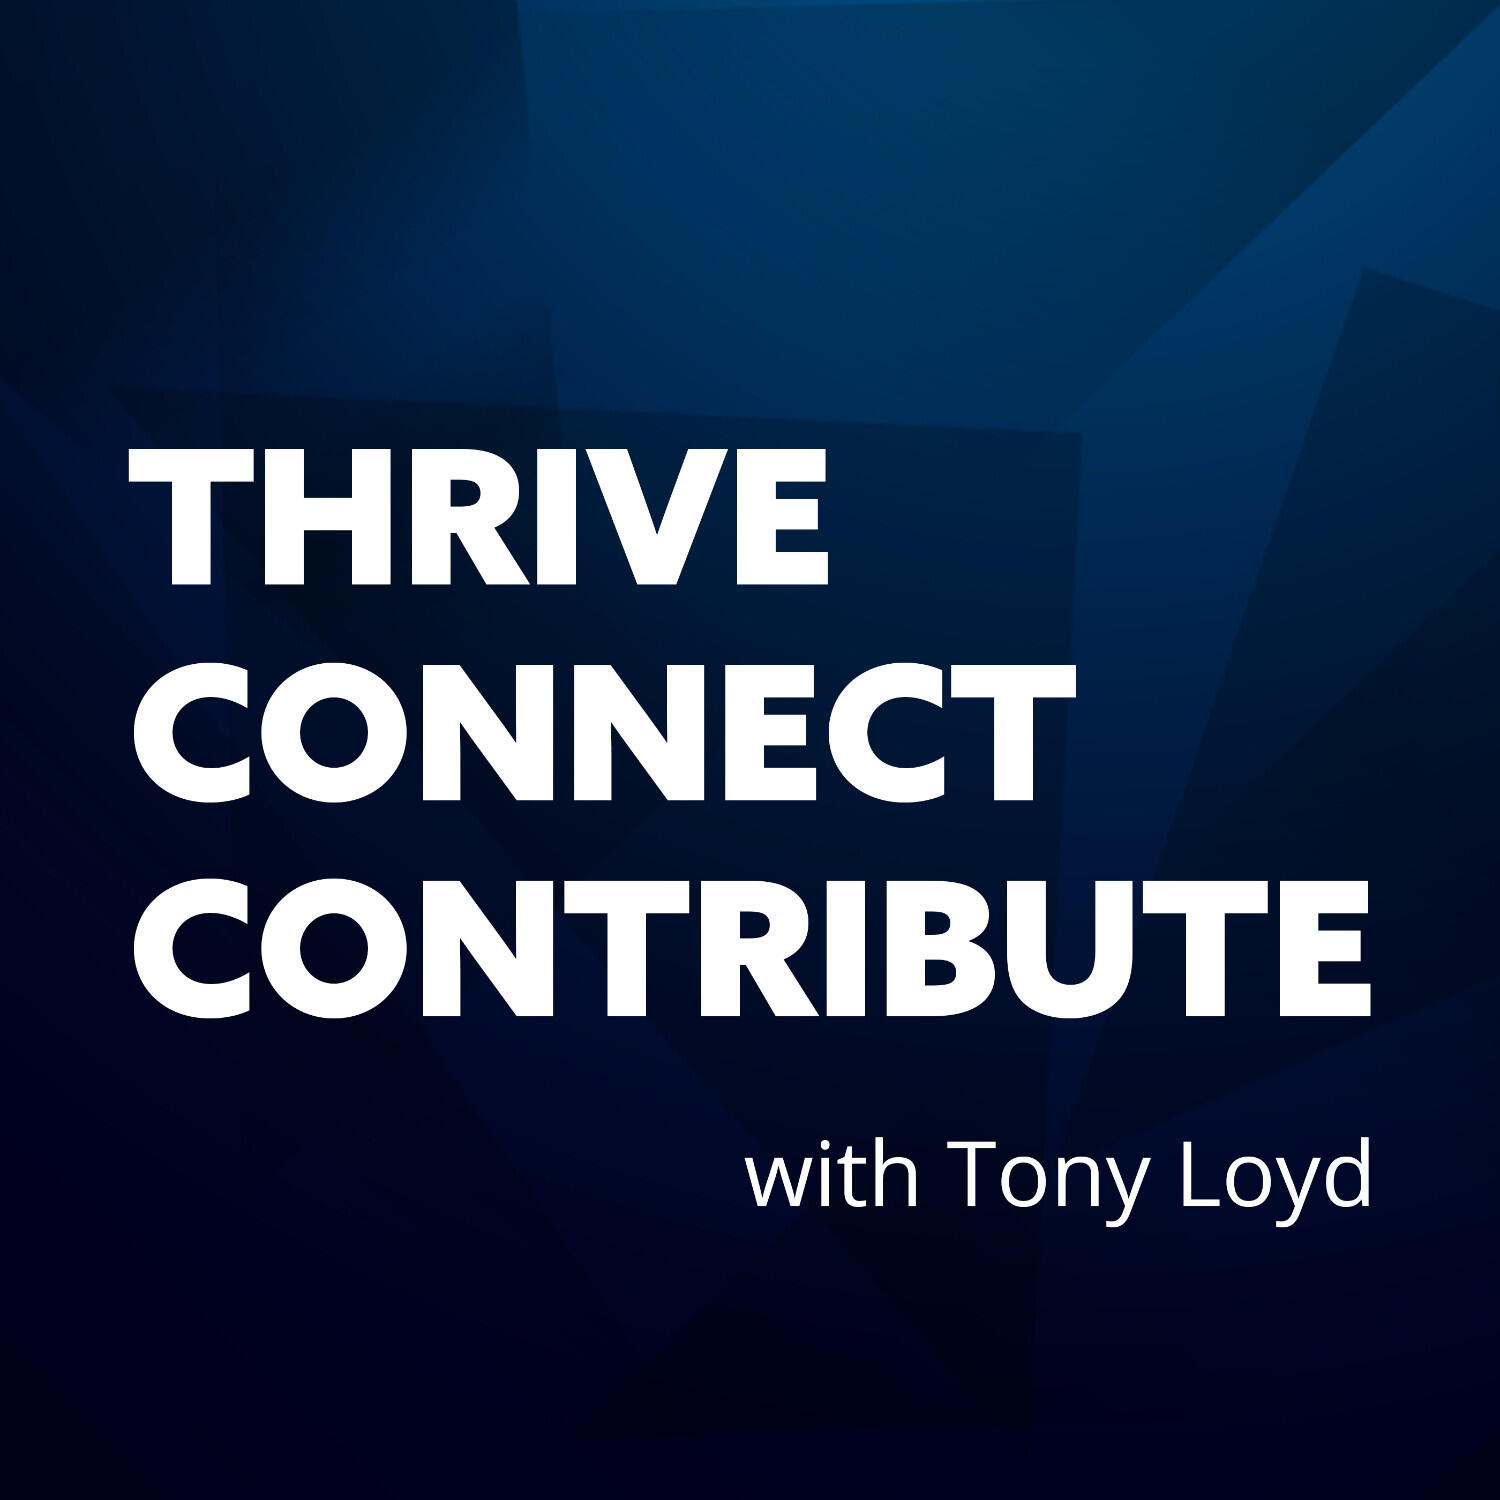 Thrive. Connect. Contribute.